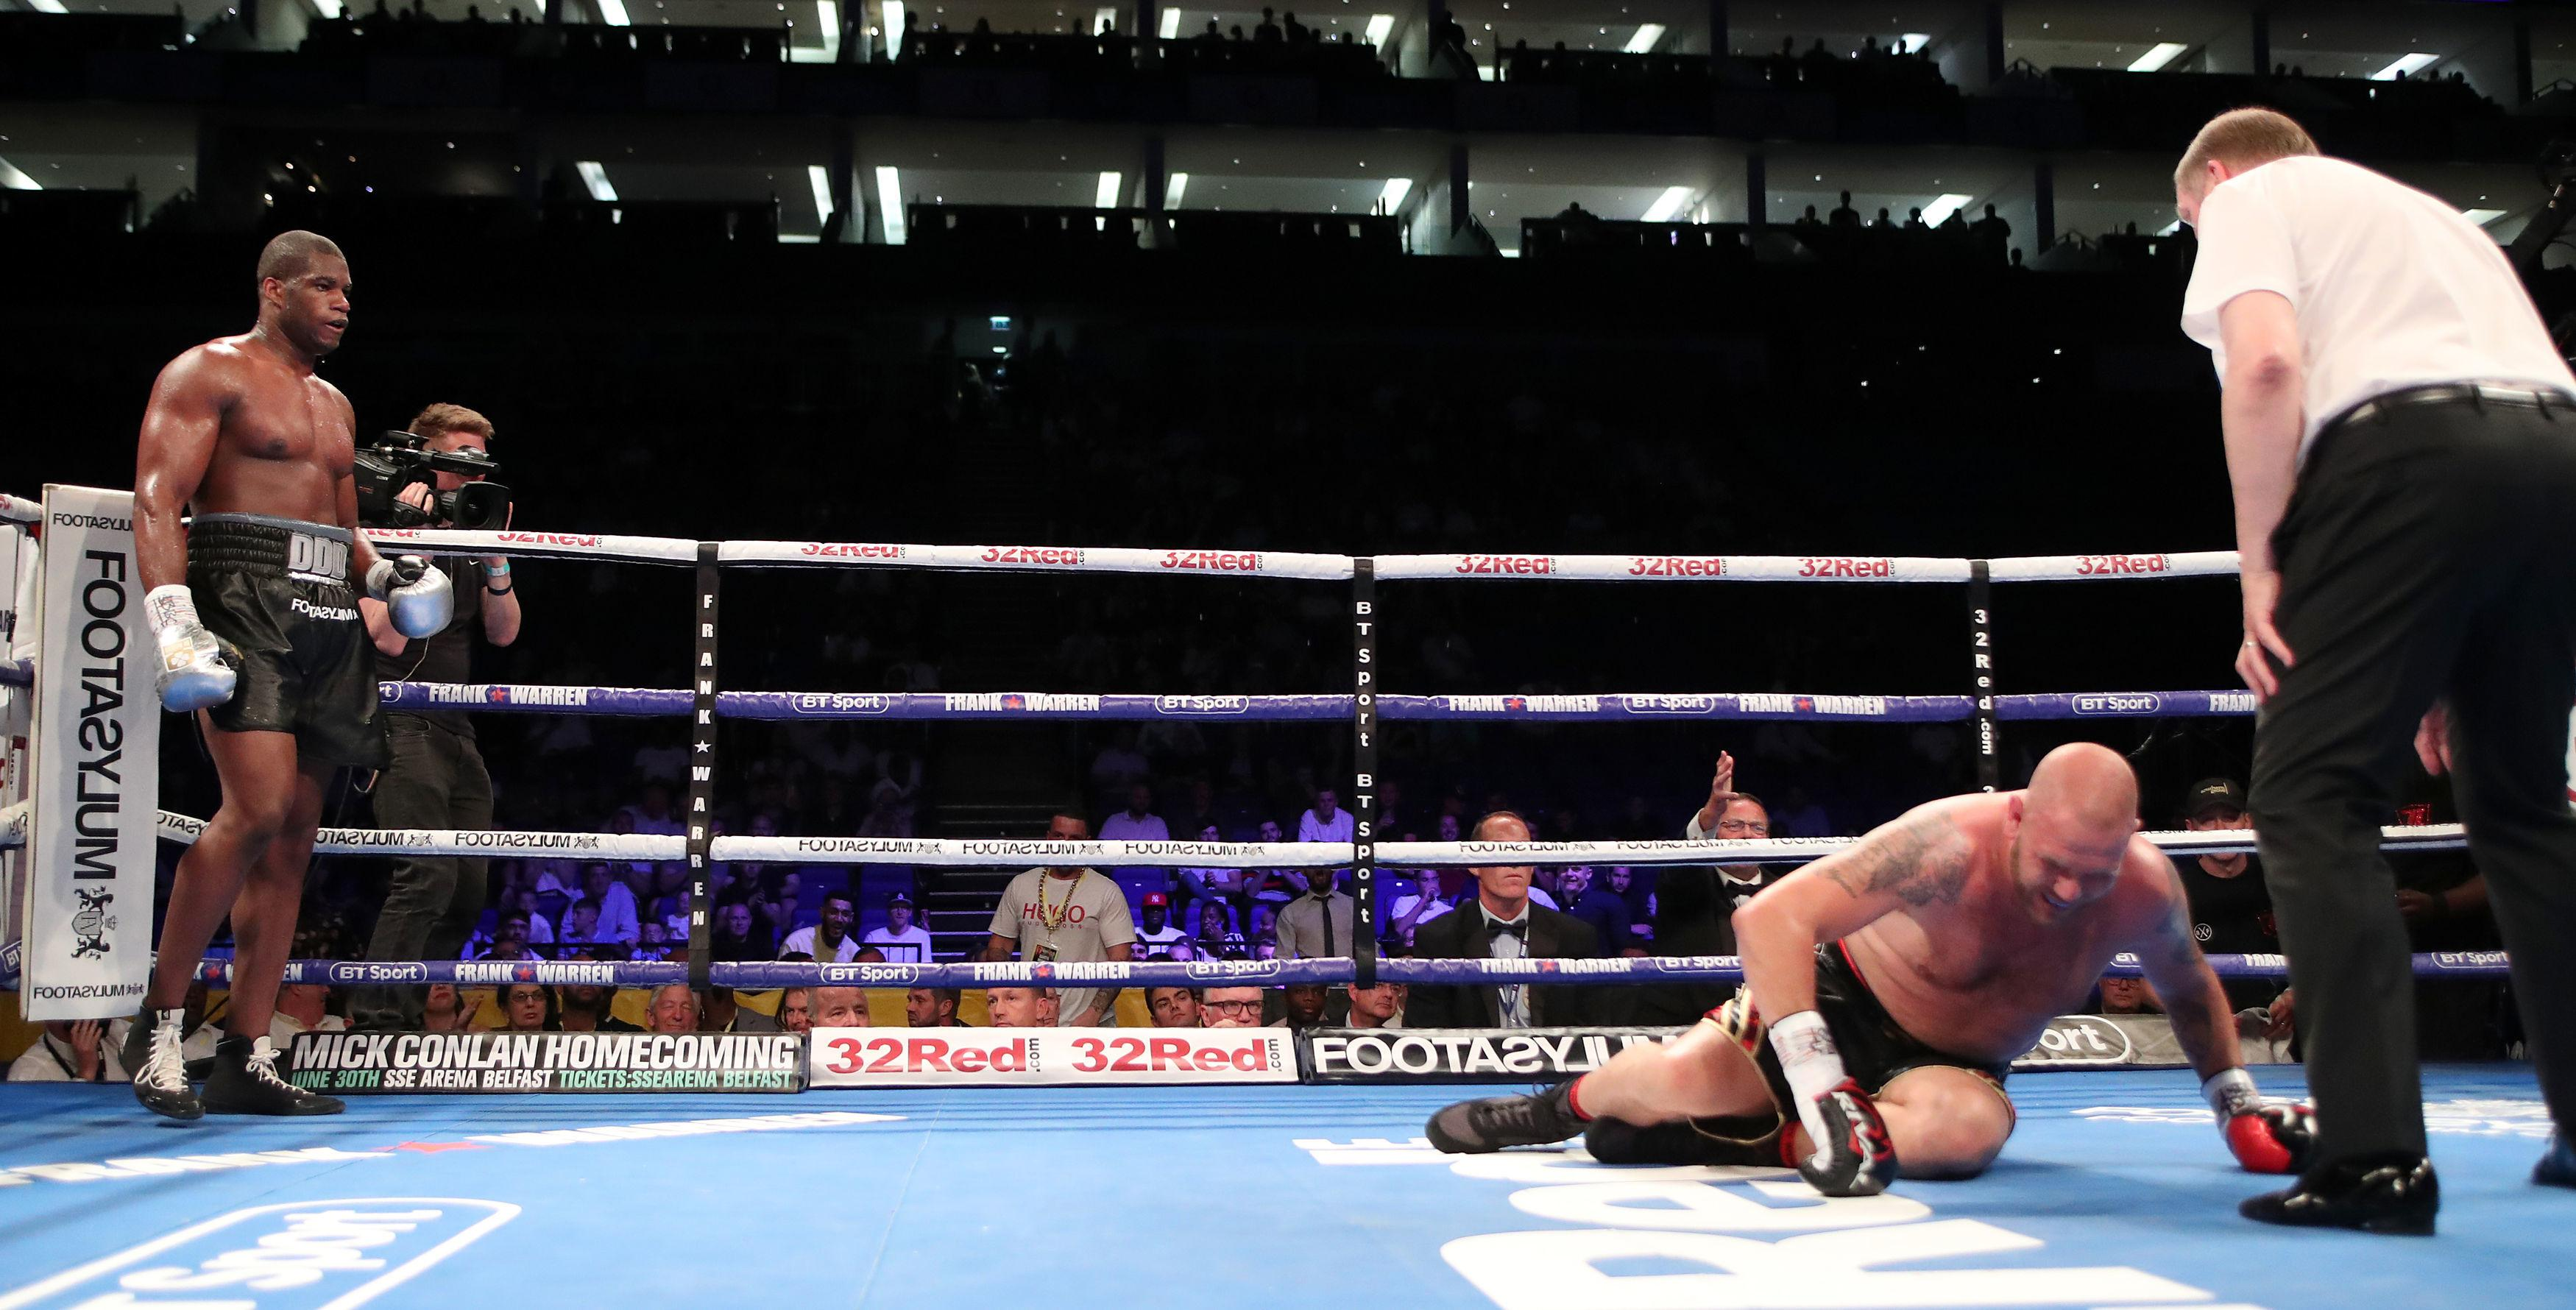 Daniel Dubois won his his first major title with an impressive win against Tom Little